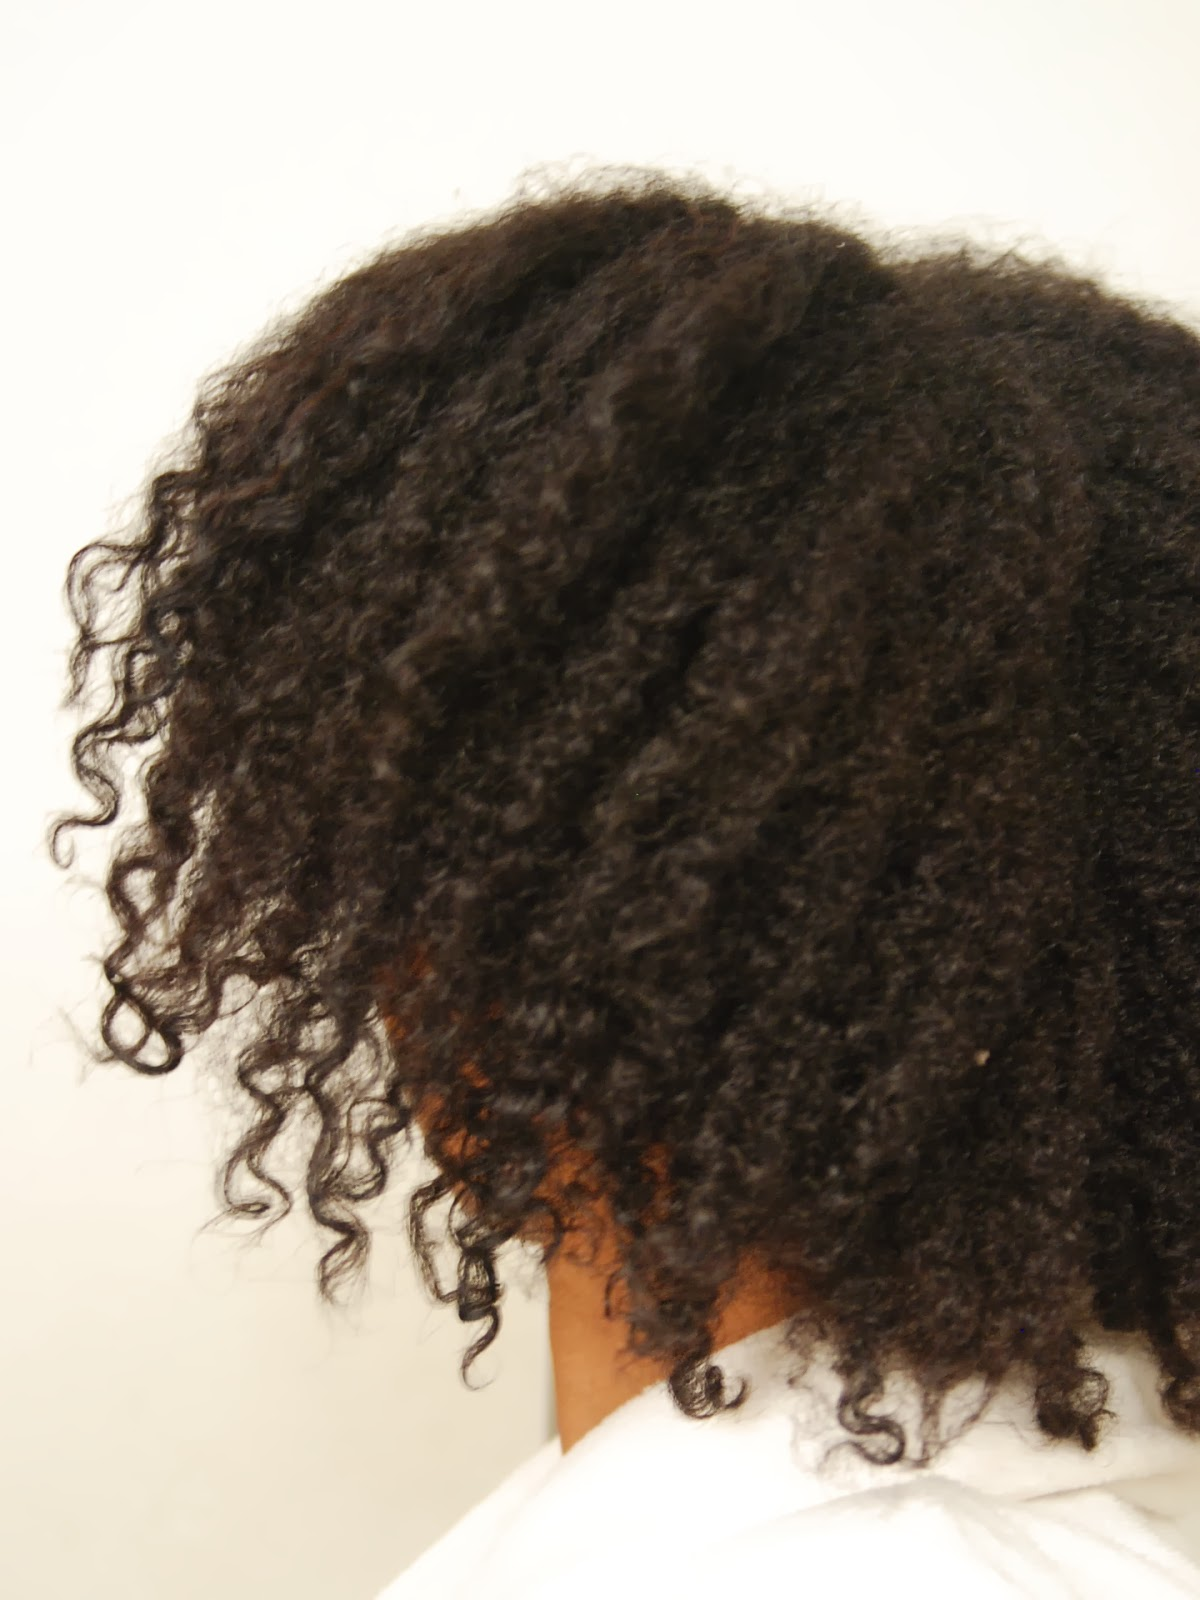 www.curlyincolorado.com coconut oil pre poo on natural hair